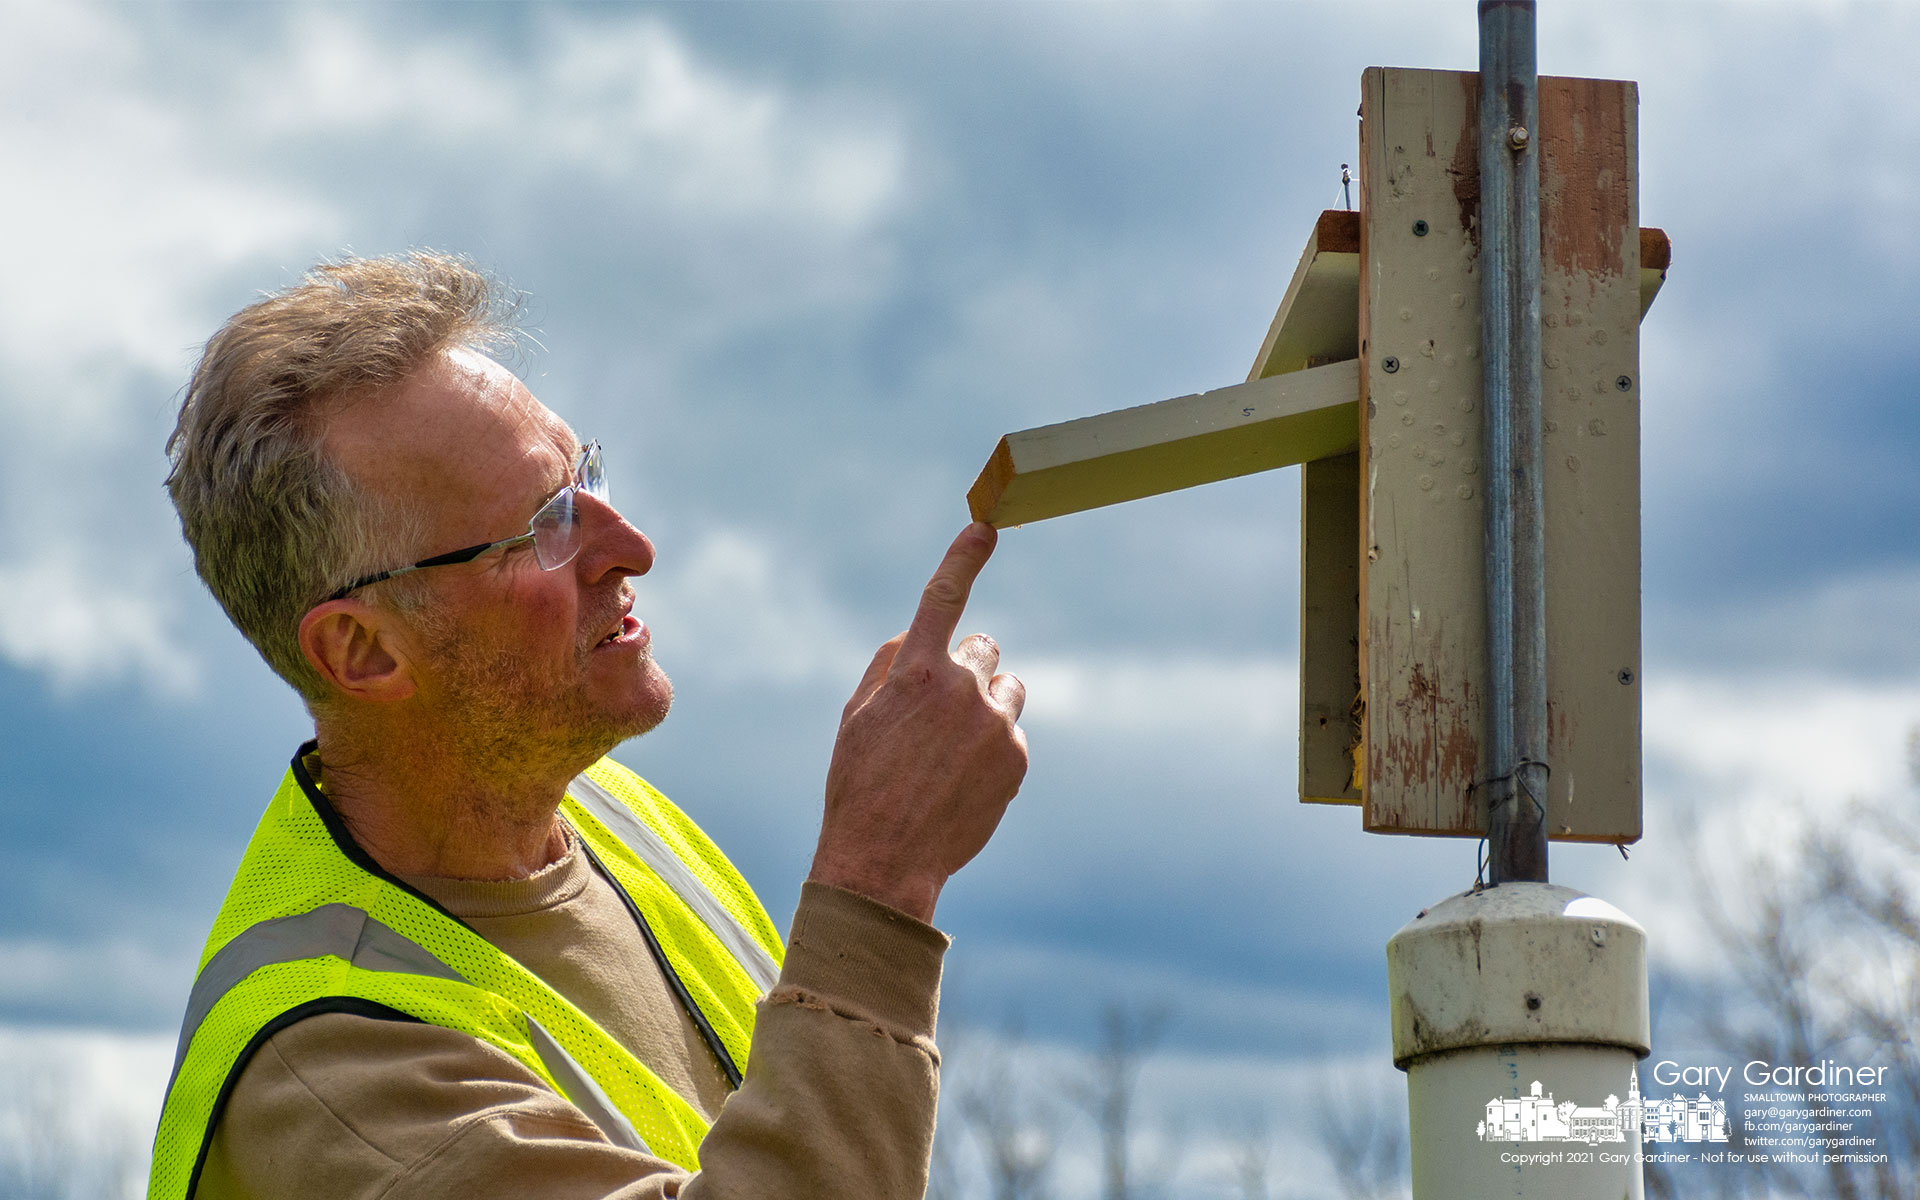 A volunteer inspects one of the nearly 20 bluebird boxes on the narrow prairie between Hoover Reservoir and Sunbury Road. My Final Photo for March 26, 2021.